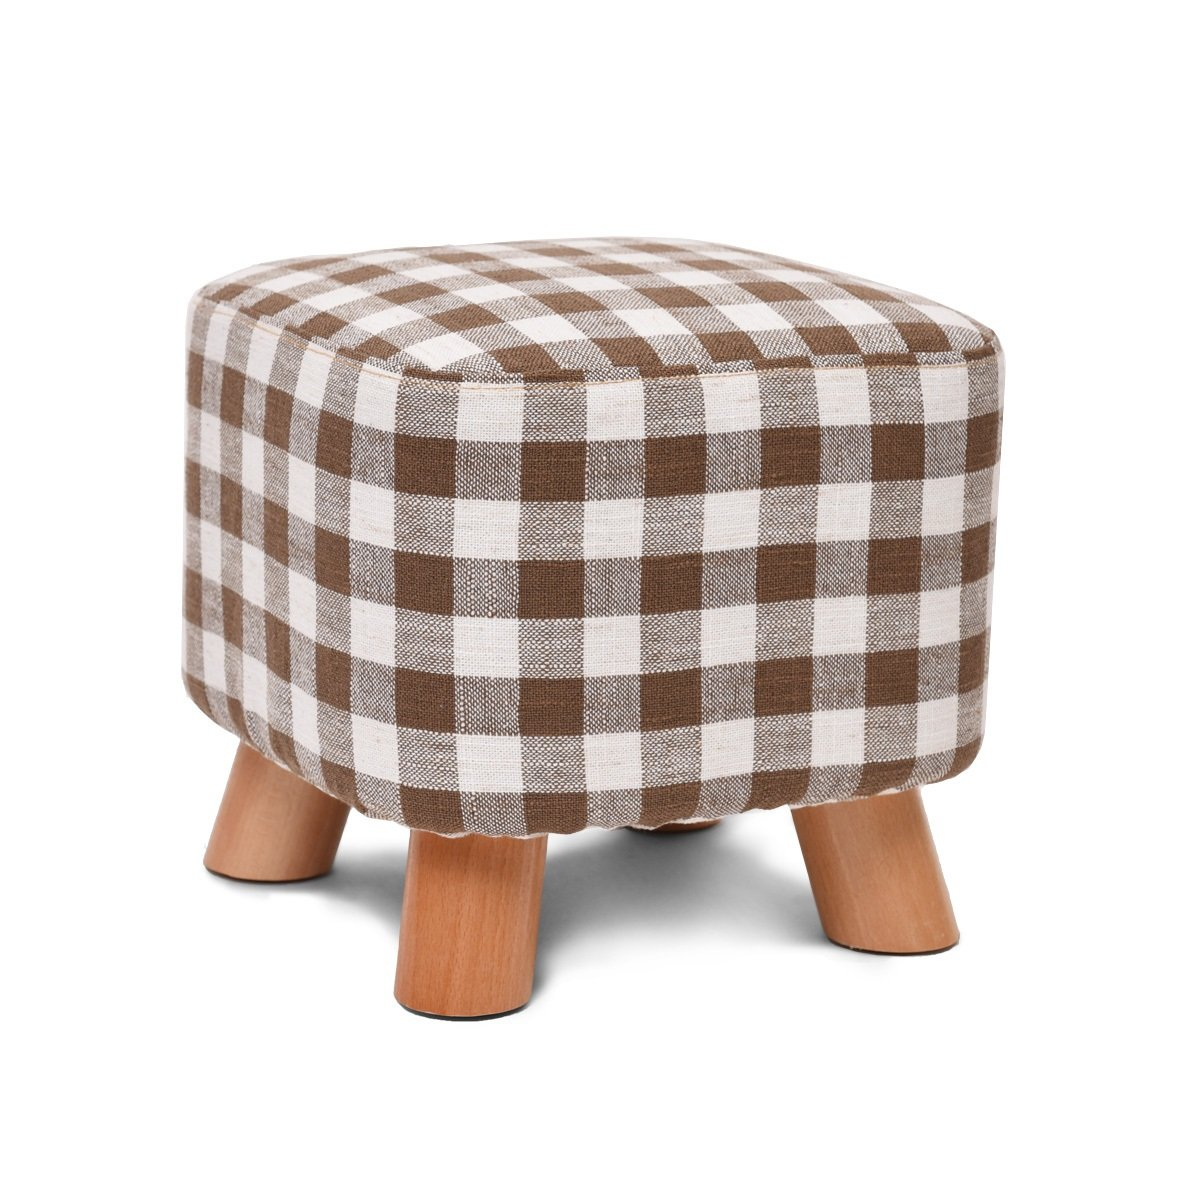 Xin-stool Solid wood shoes bench/bedroom stool/geometric fabric stool/creative square stool/fabric stool/sofa stool/coffee table bench/home stool/Leisure Stool/(2825cm)